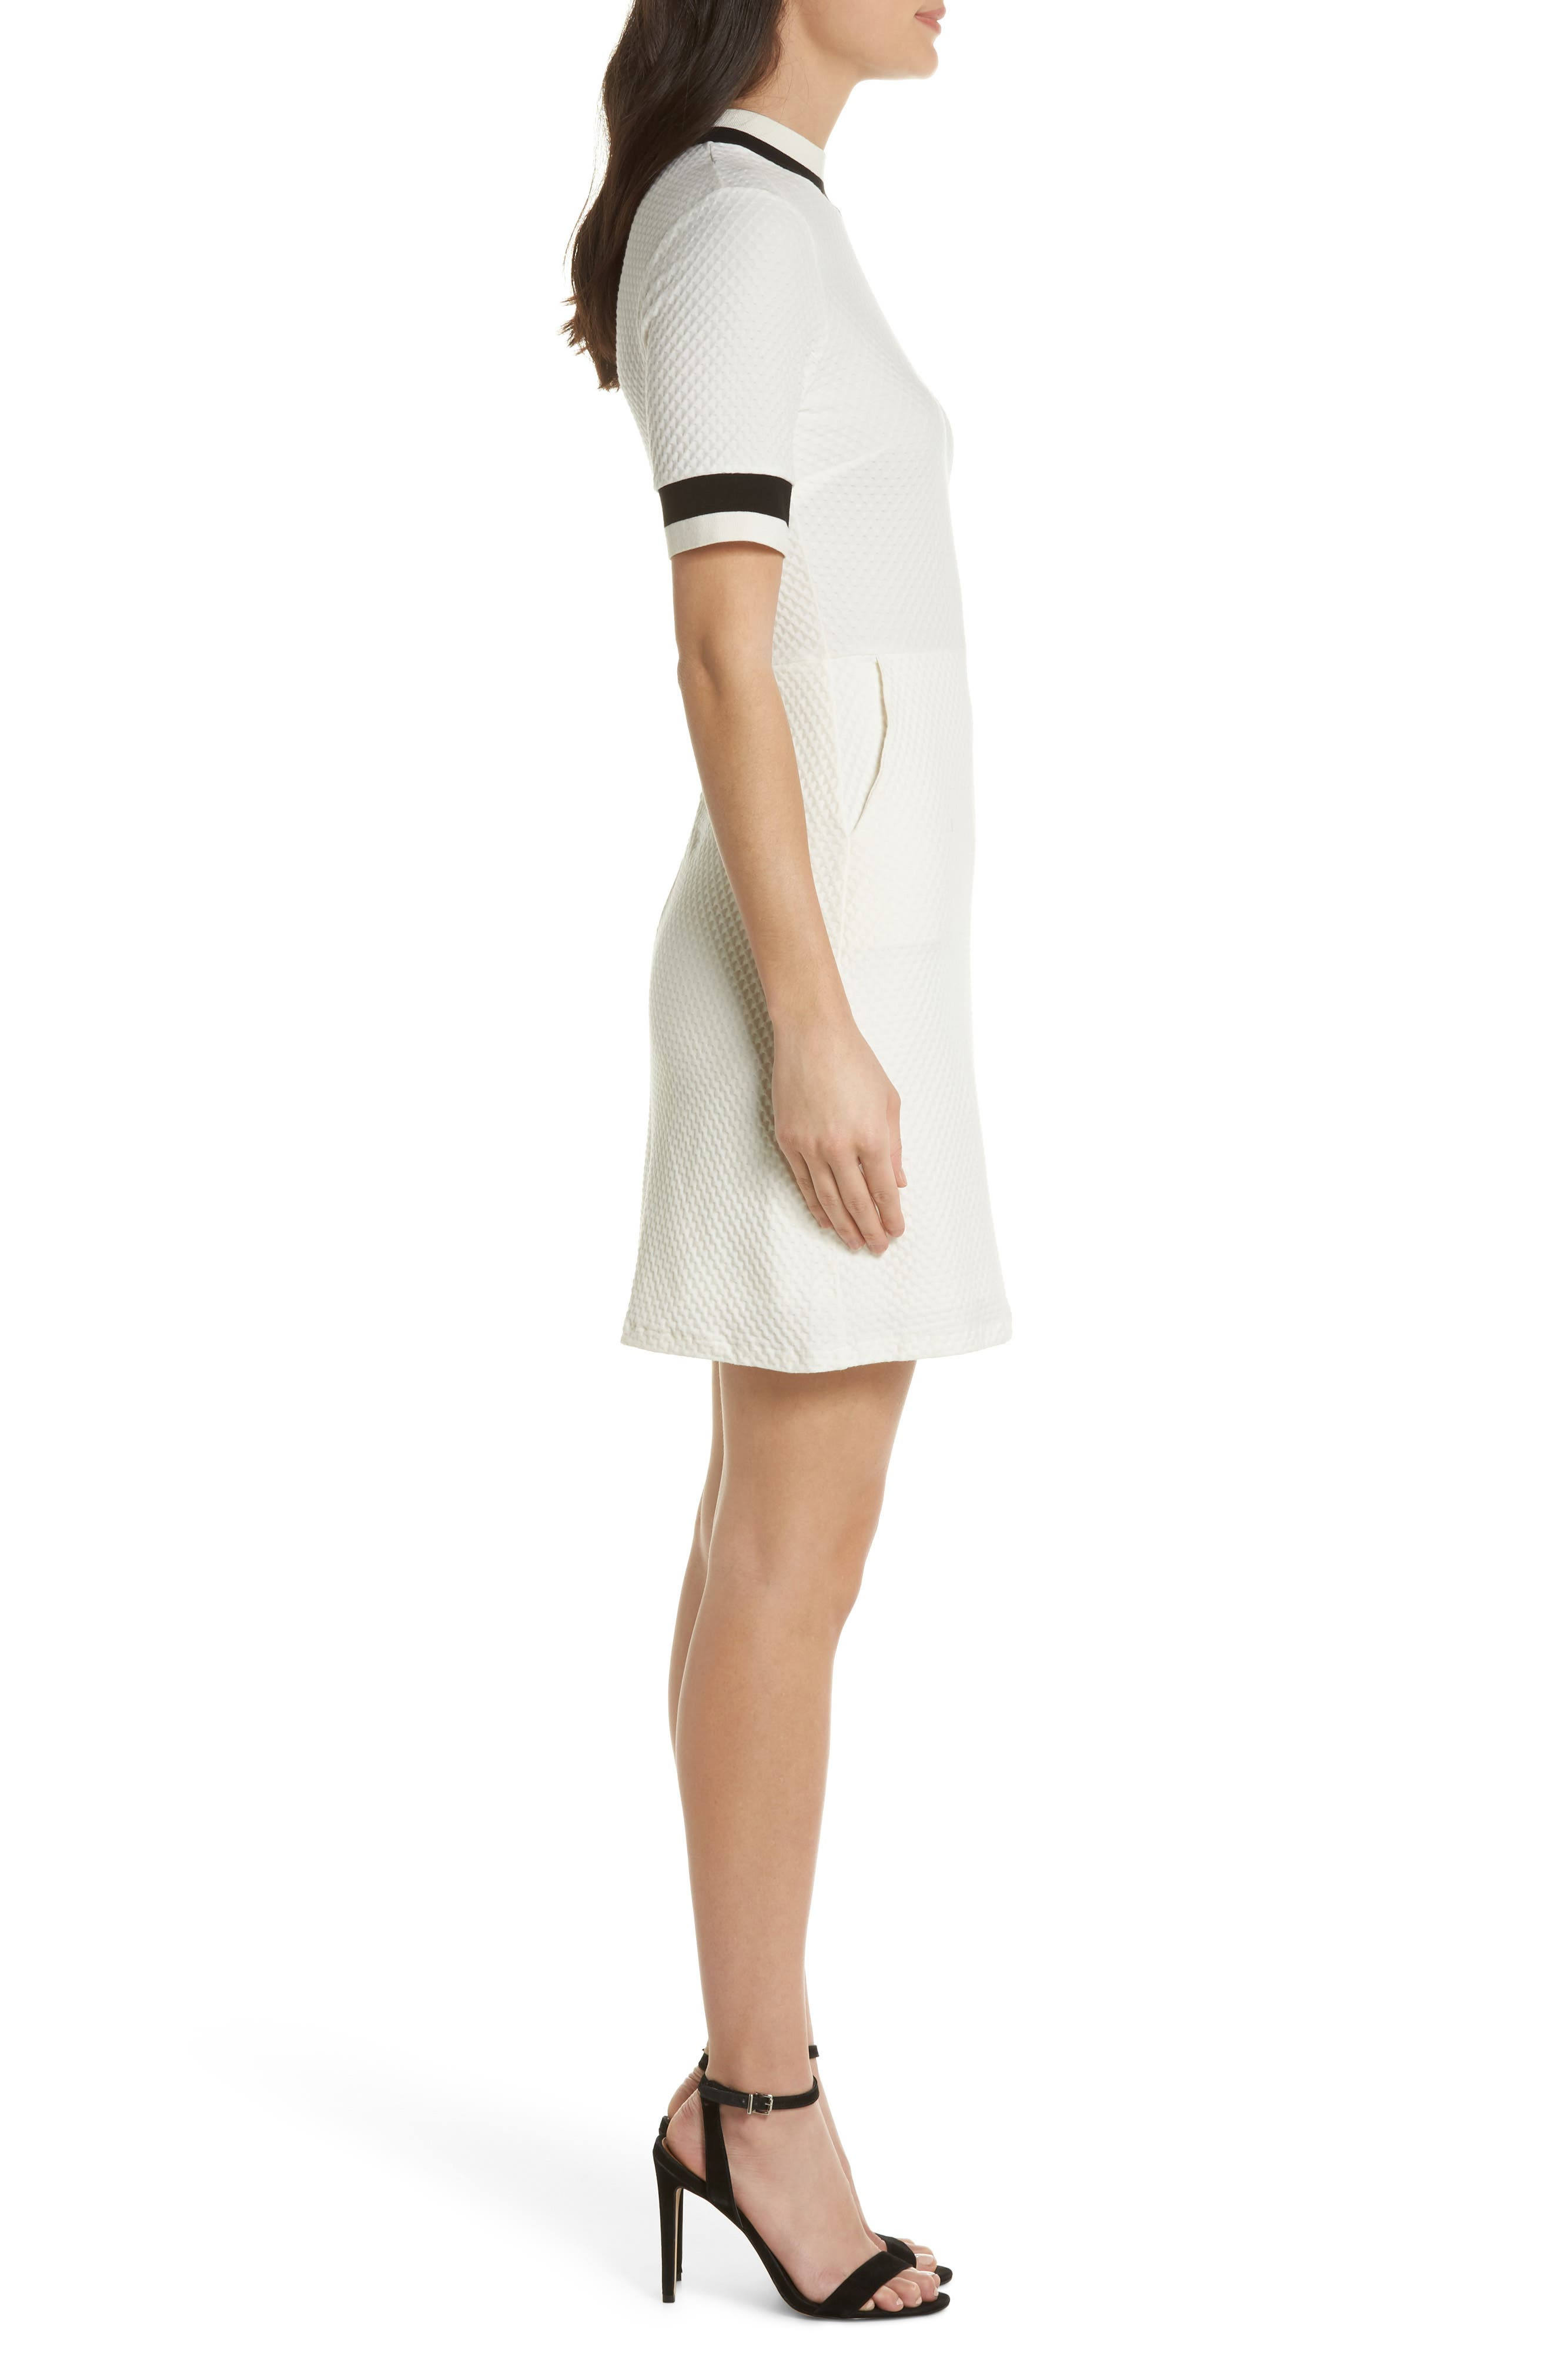 FRENCH CONNECTION, Savos Sudan Jersey Dress, Alternate thumbnail 4, color, BLACK/ SUMMER WHITE